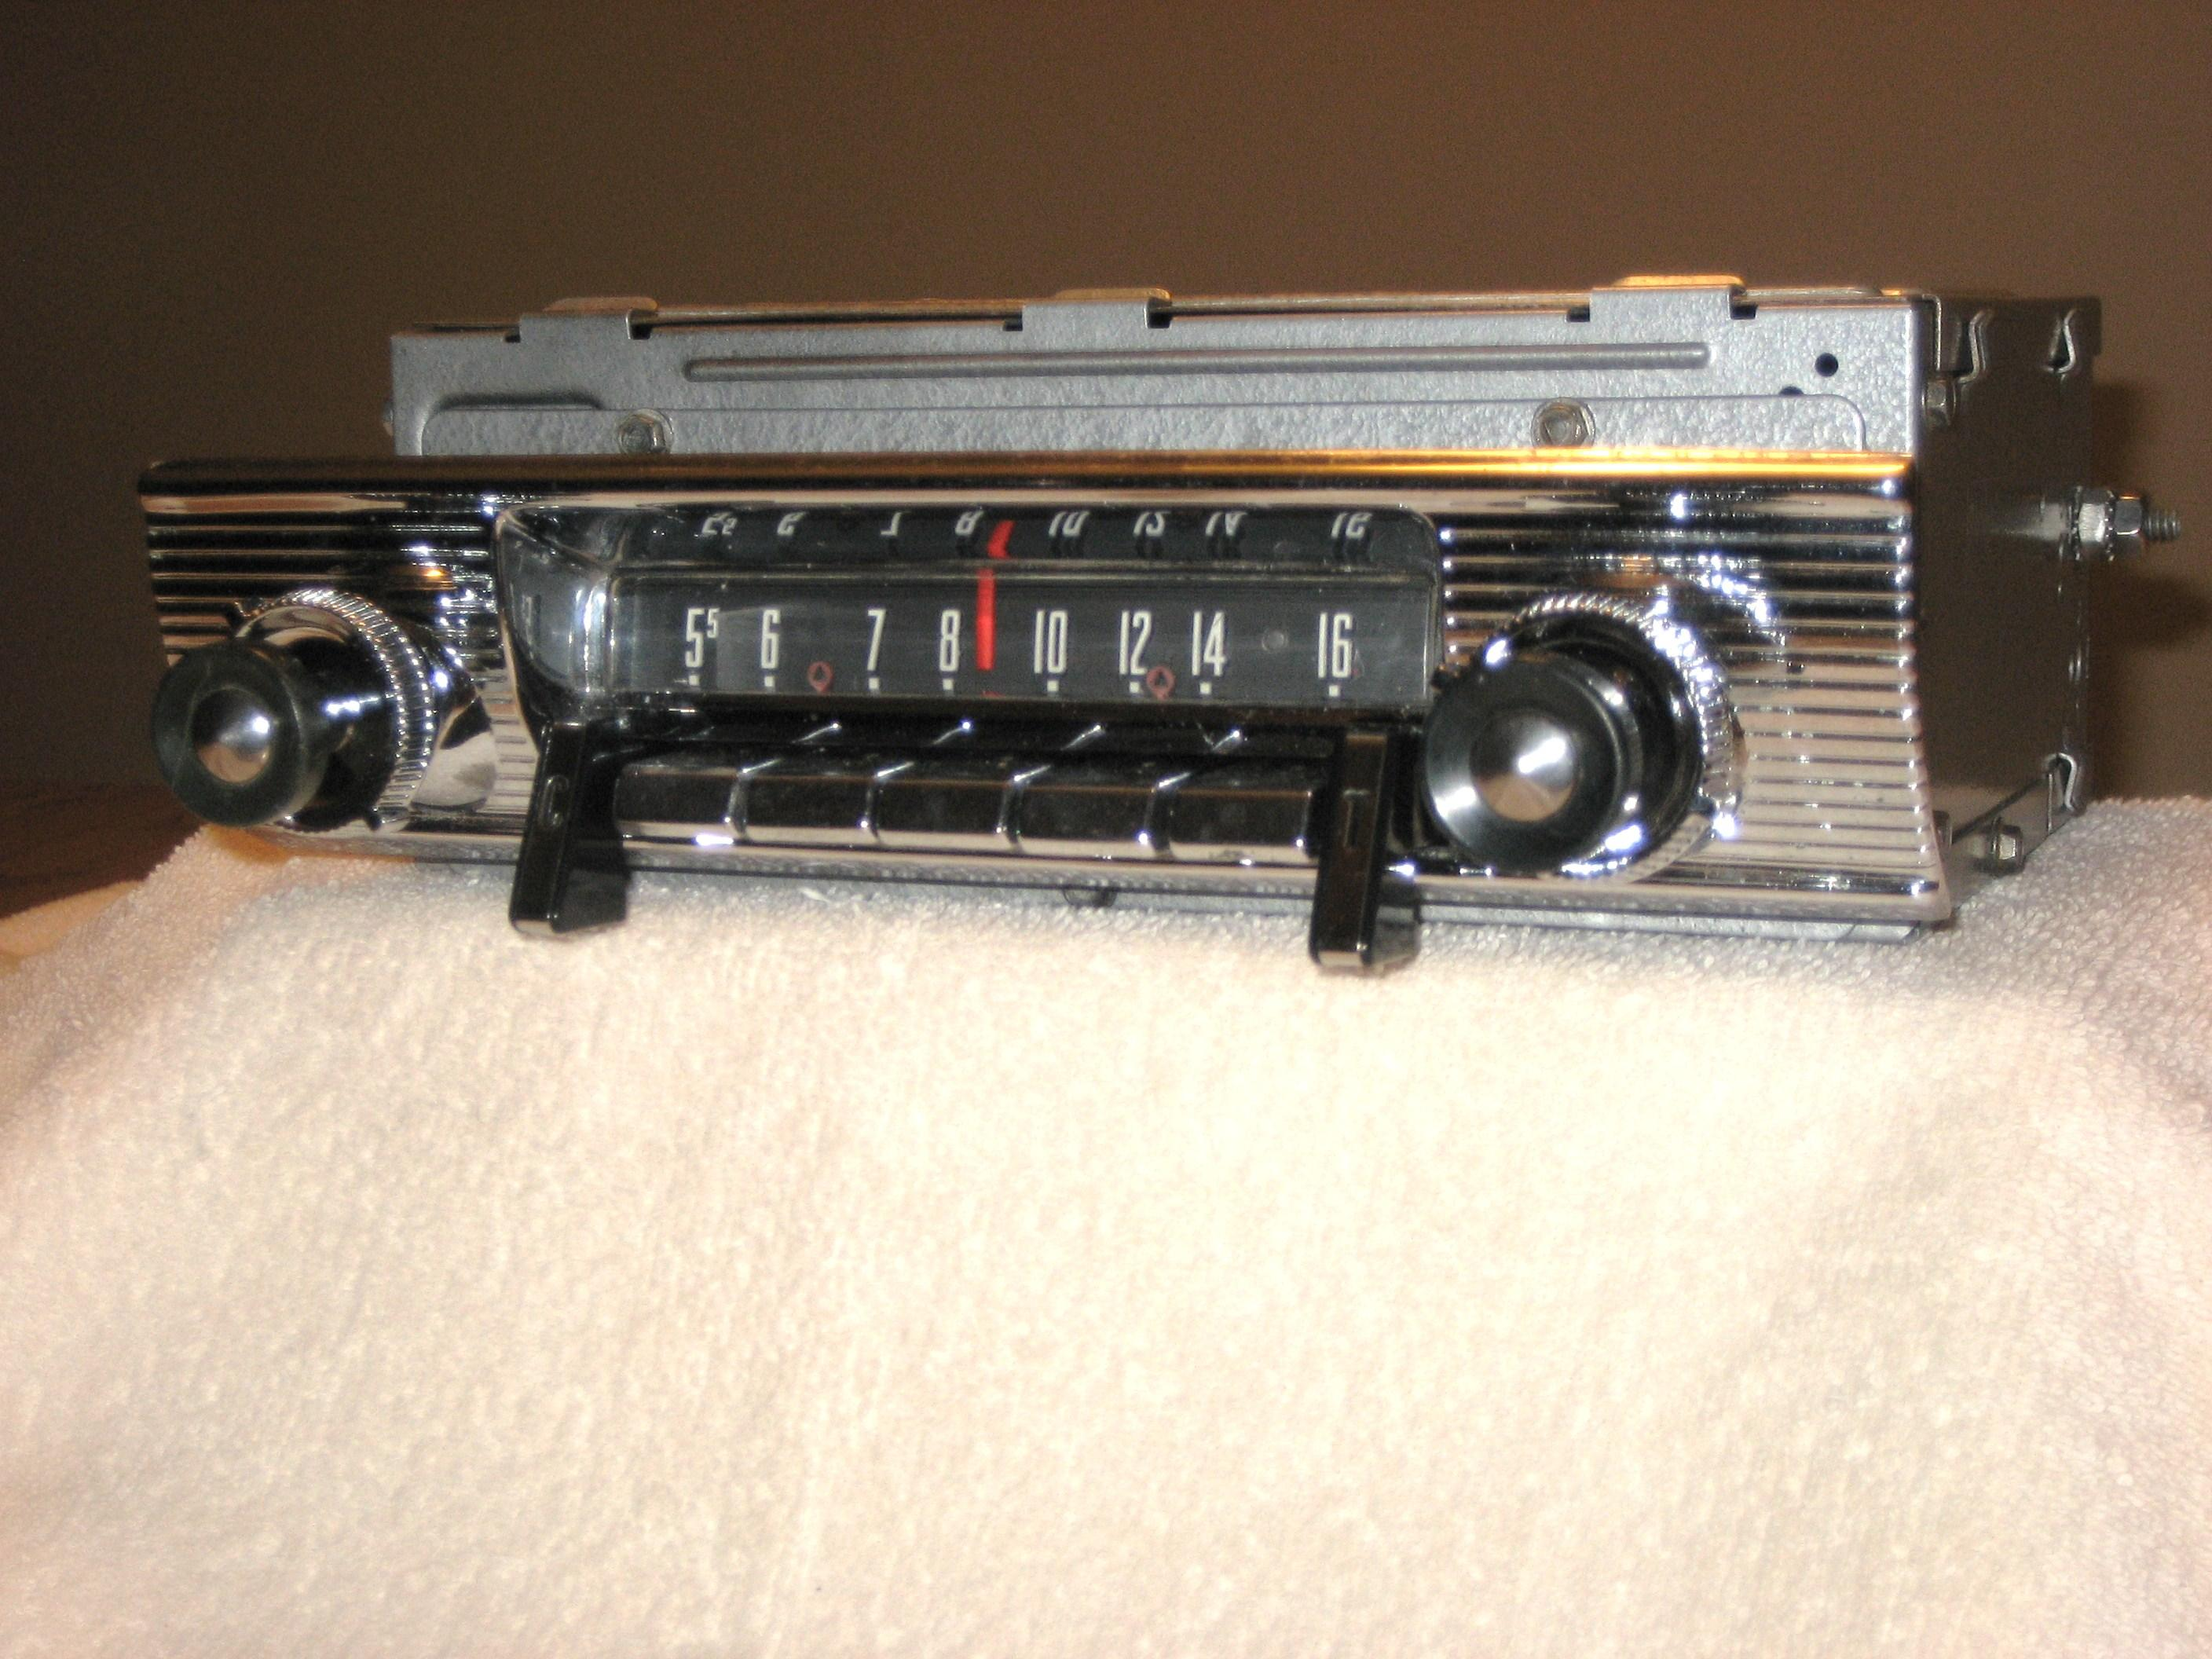 1956 FORD TOWN & COUNTRY AM-FM STEREO RADIO